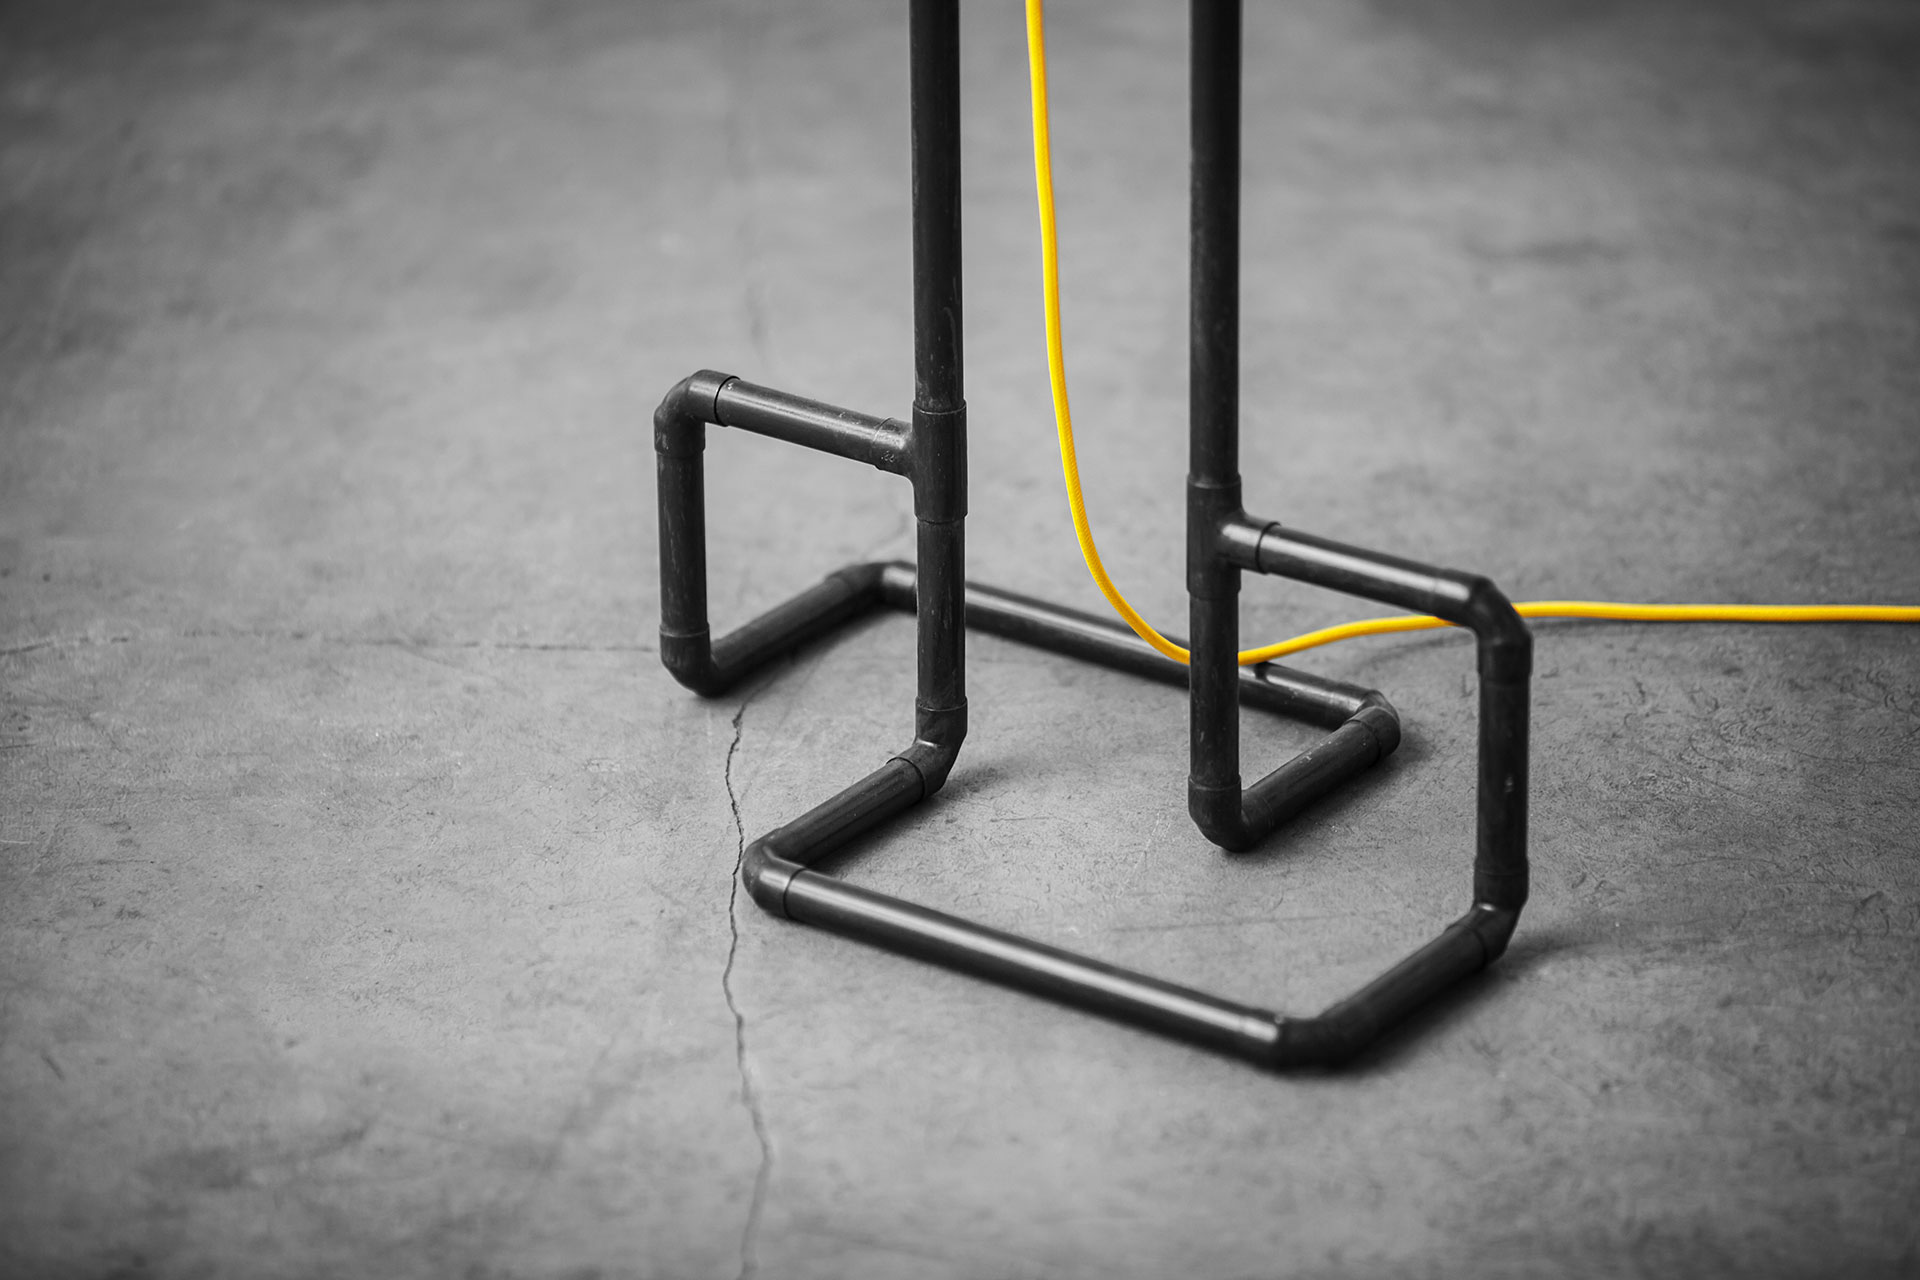 Designer floor lamp detail in black patina with yellow braided cord